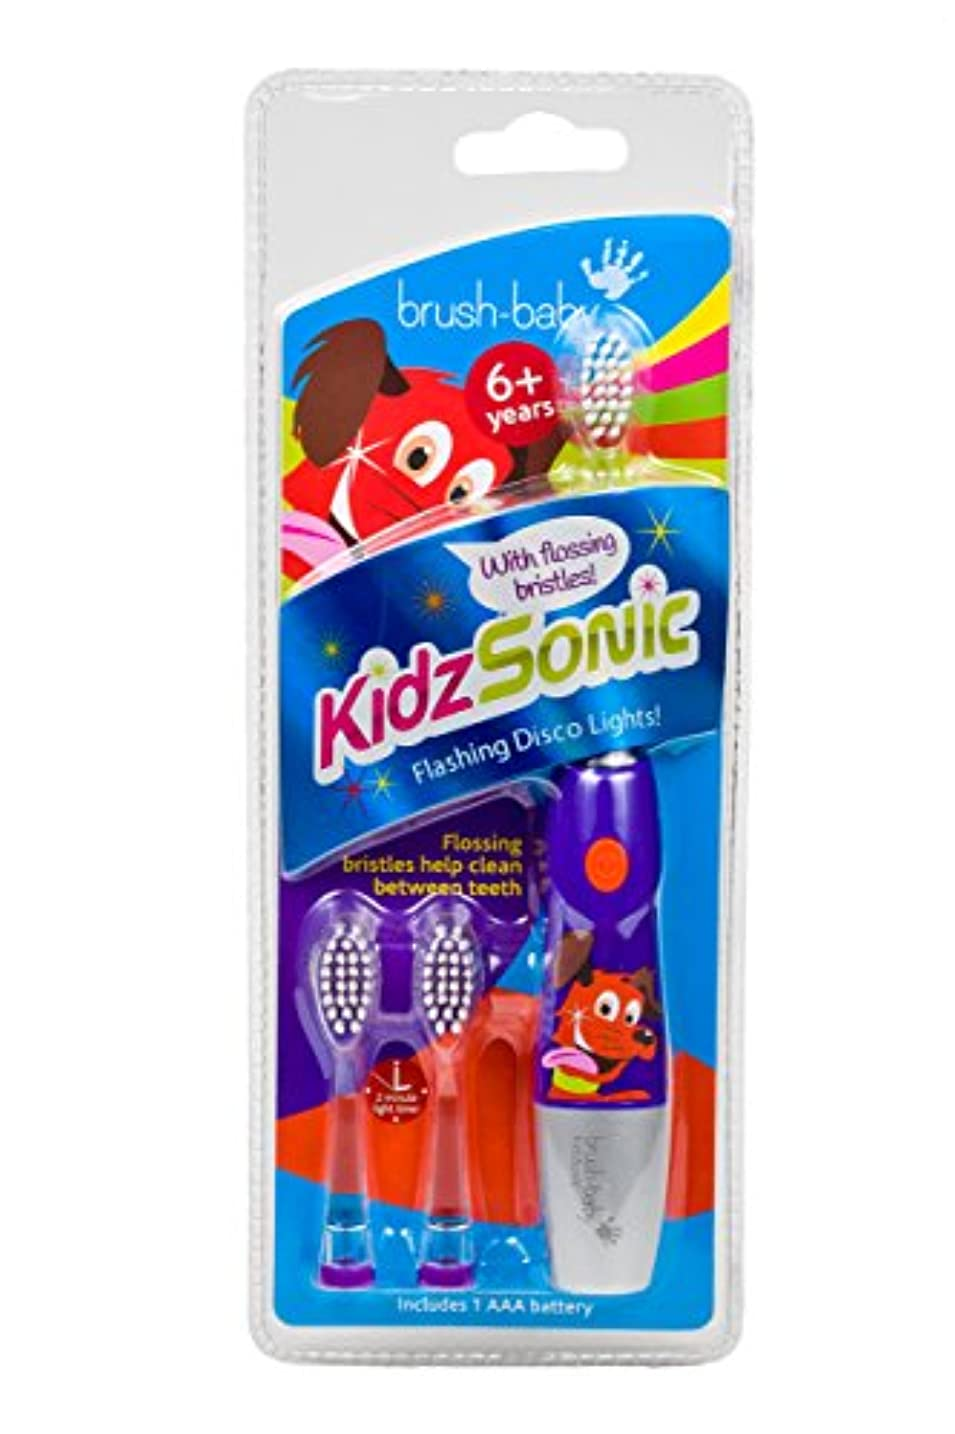 と組む浅いスポンジBrush-Baby KidzSonic Electric Toothbrush 6+ years with flashing disco lights PURPLE - ブラシ - ベイビーKidzSonic電動歯ブラシ...